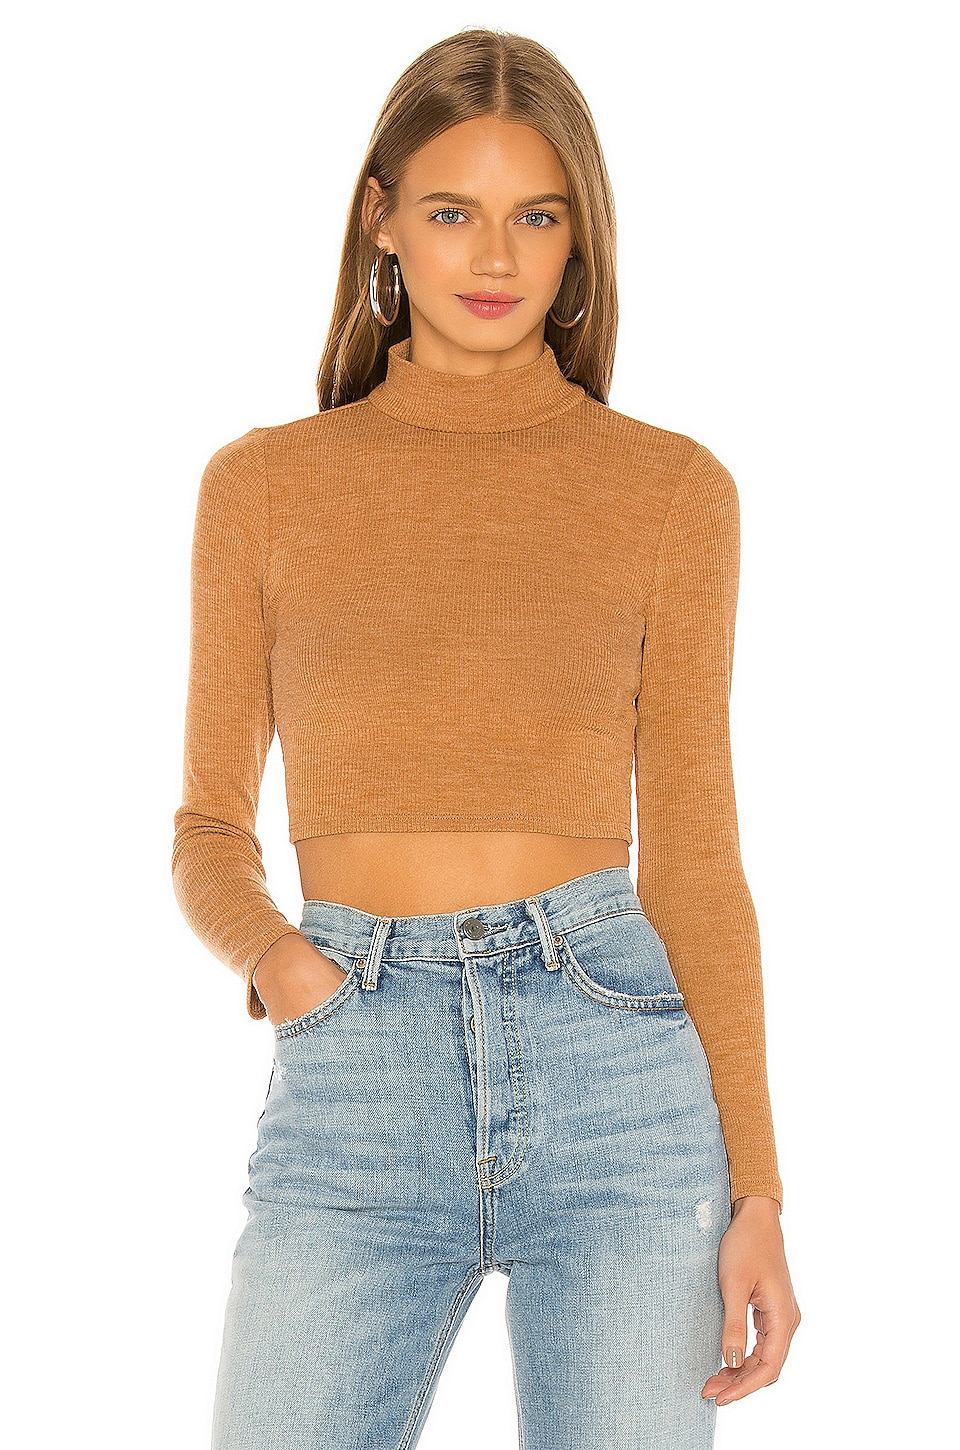 Lovers + Friends Cameron Sweater in Camel